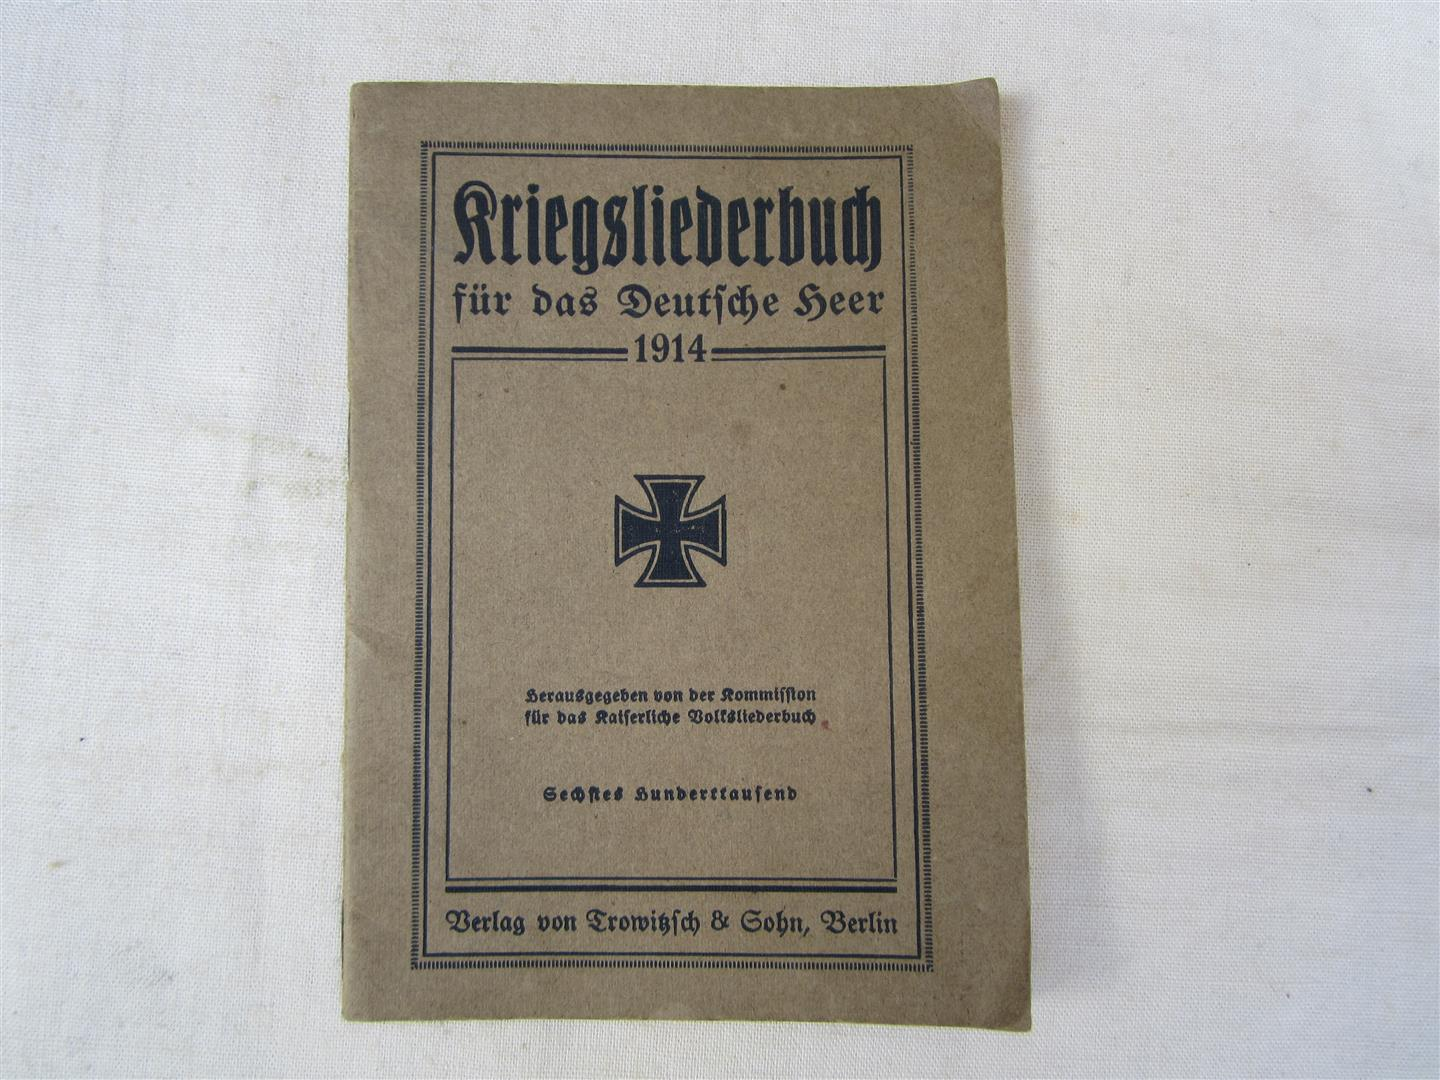 WW1 German Kriegsliederbuch